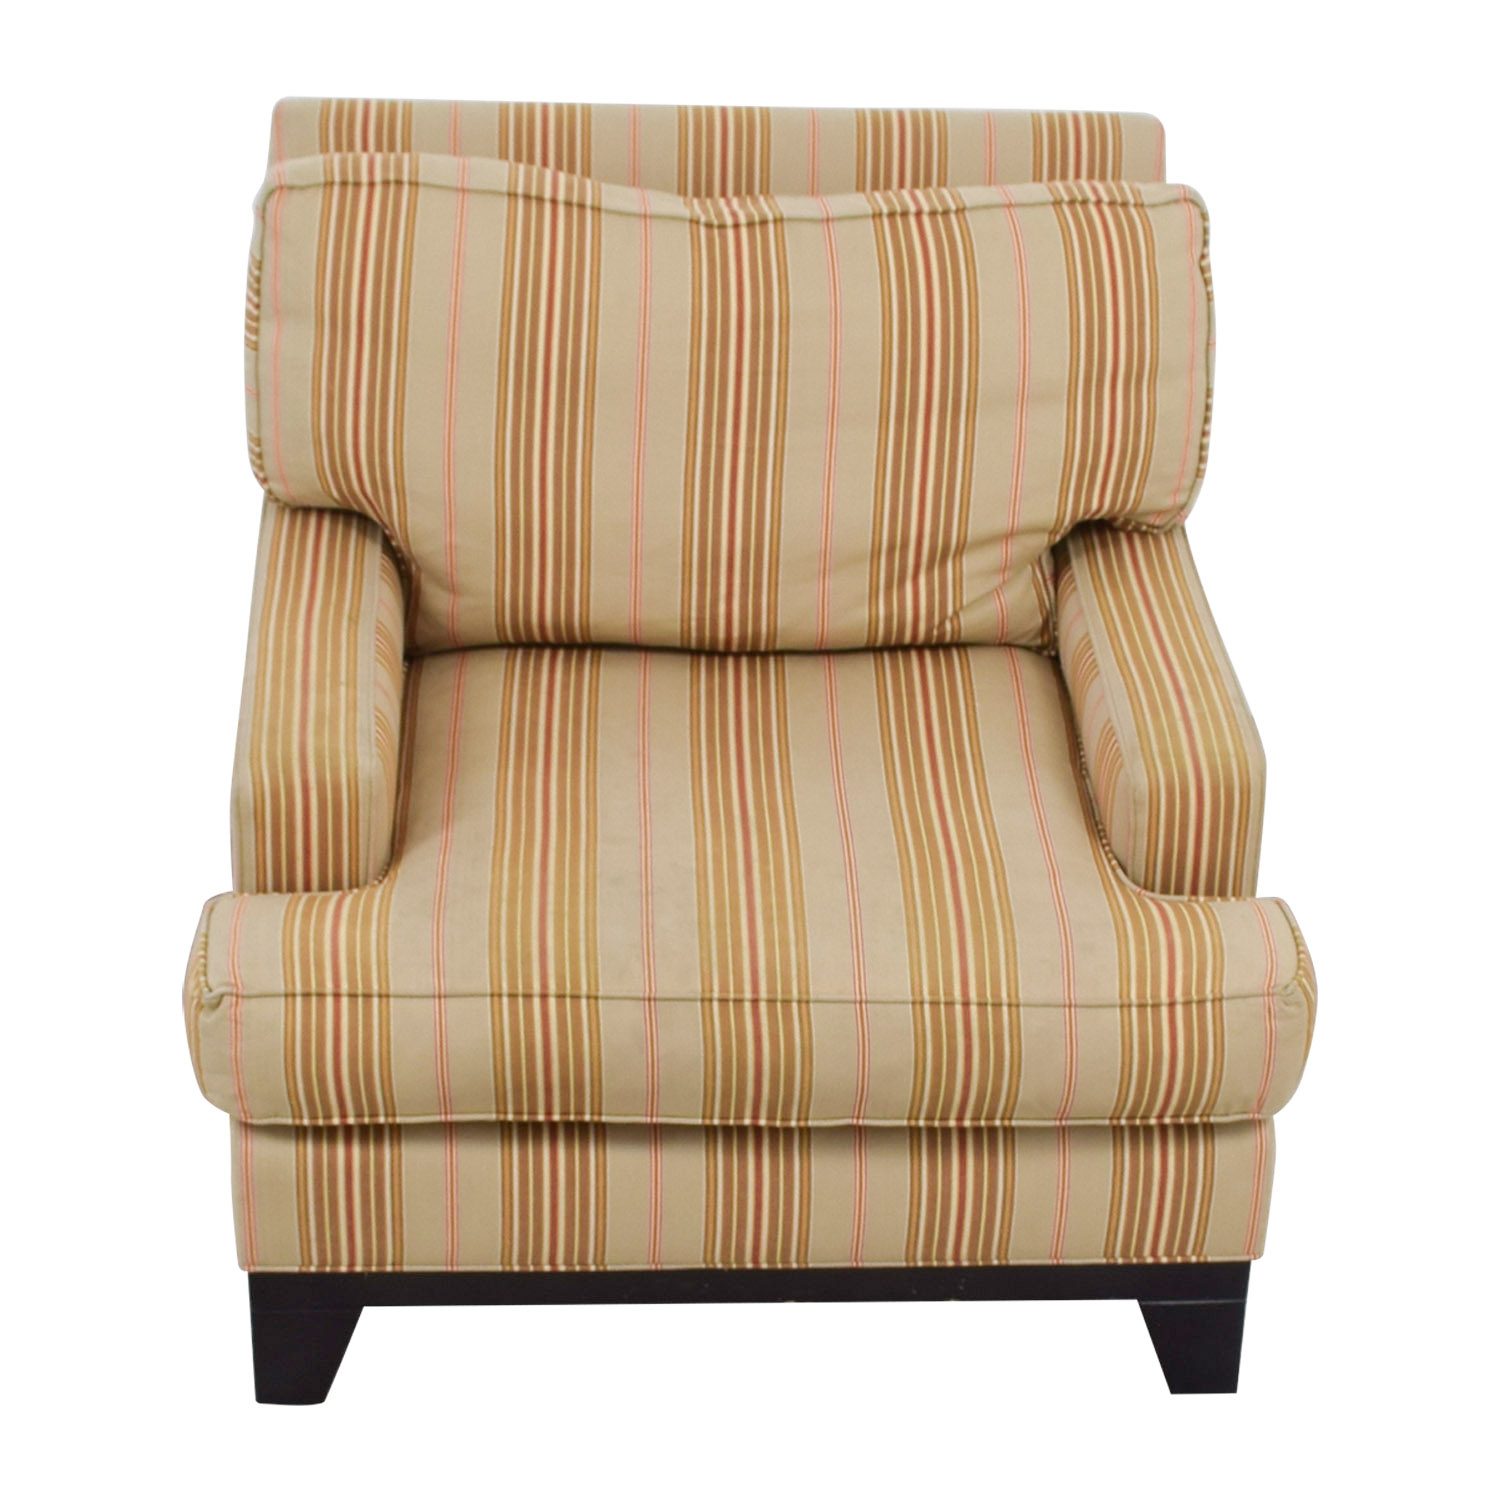 Ethan Allen Club Chairs Ethan Allen Beige Gold And Red Striped Arm Chair